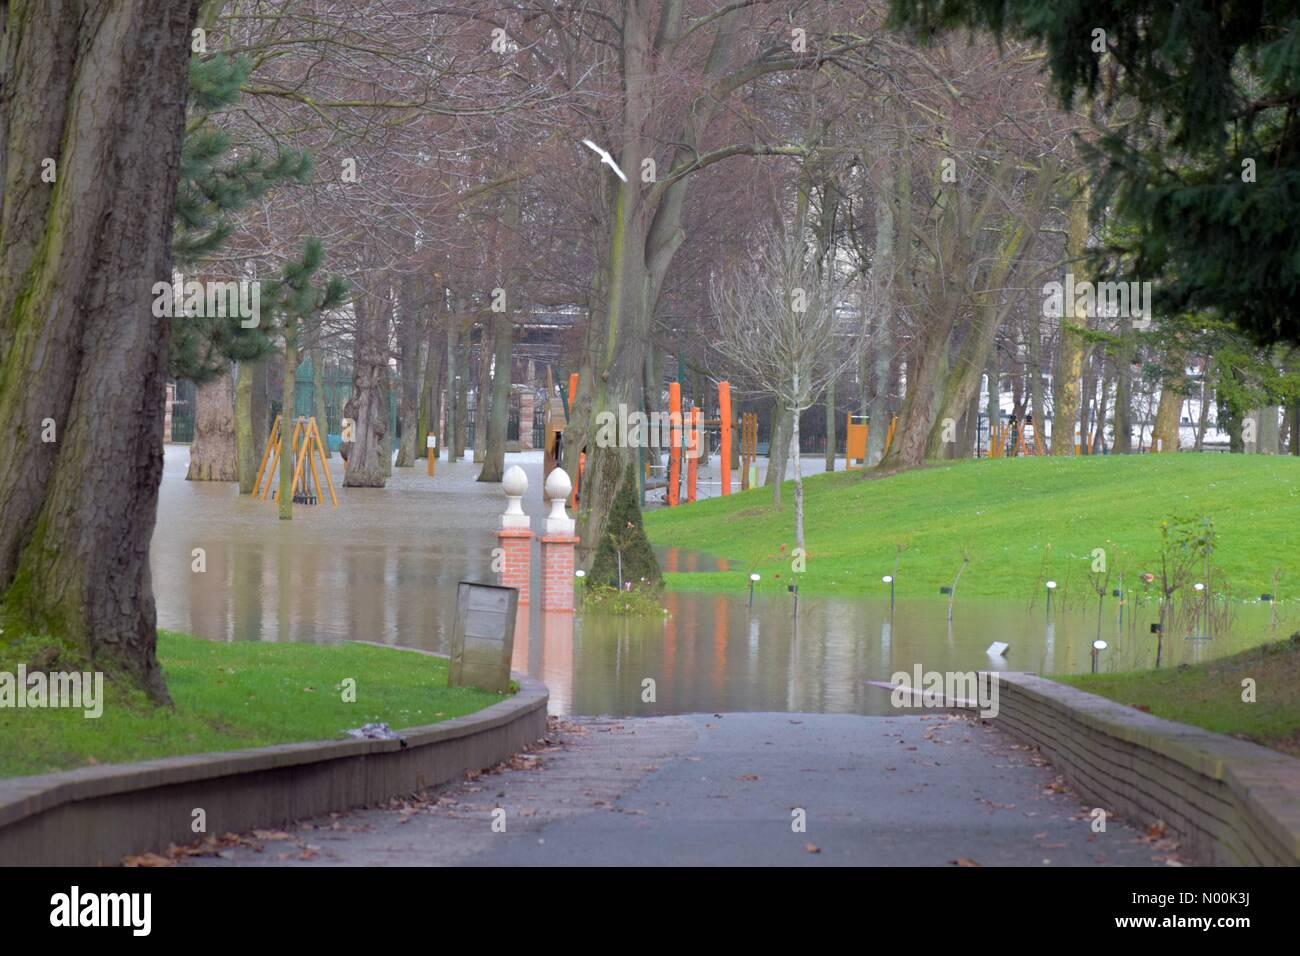 92800 Puteaux, France. 24th Jan, 2018. Paris, France January 24 : Seine River keeps rising, closing parks, flooded - Stock Image